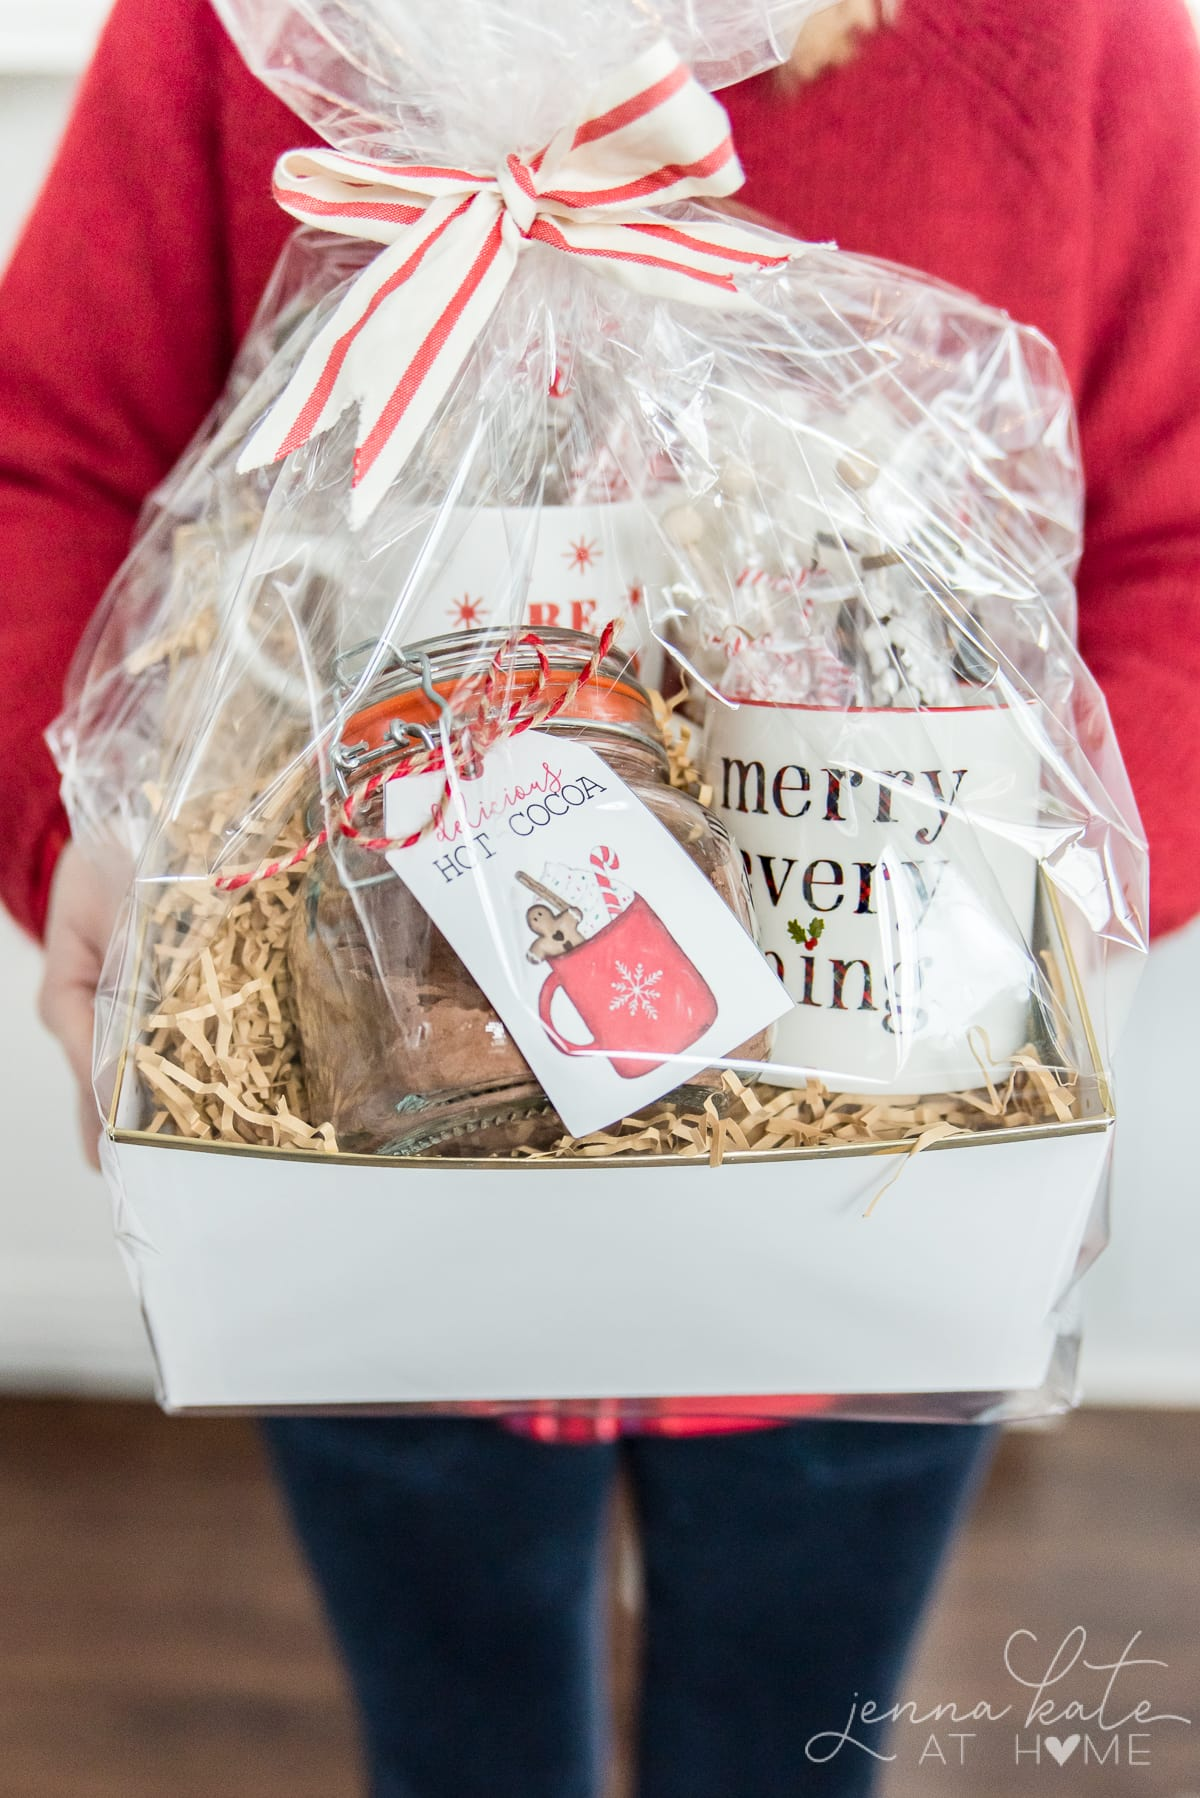 Woman holding the homemade hot chocolate mix gift basket